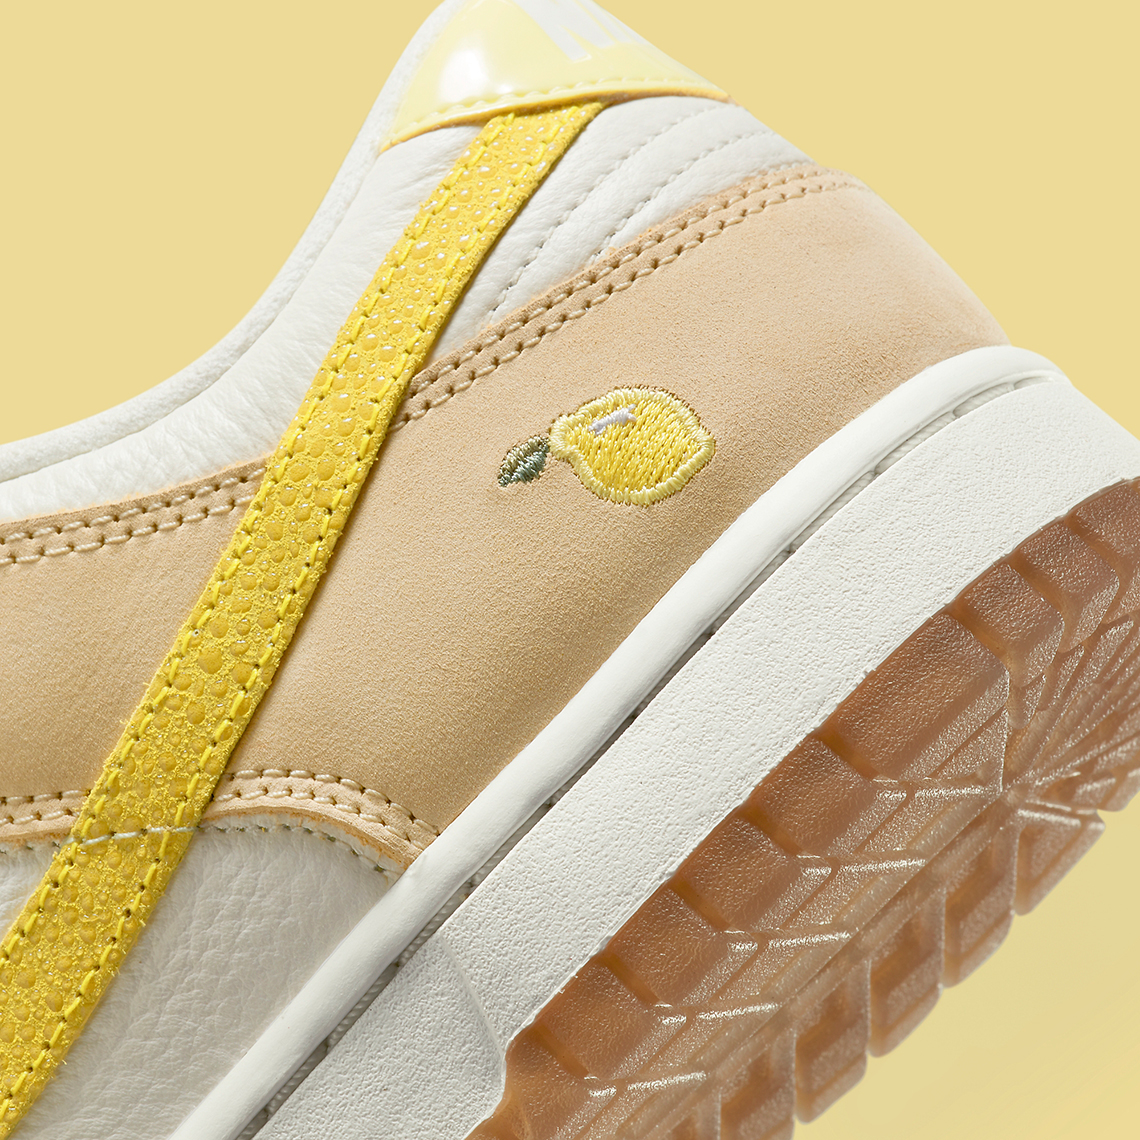 nike-dunk-low-lemon-drop-DJ6902-700-4.jpg?w=1140